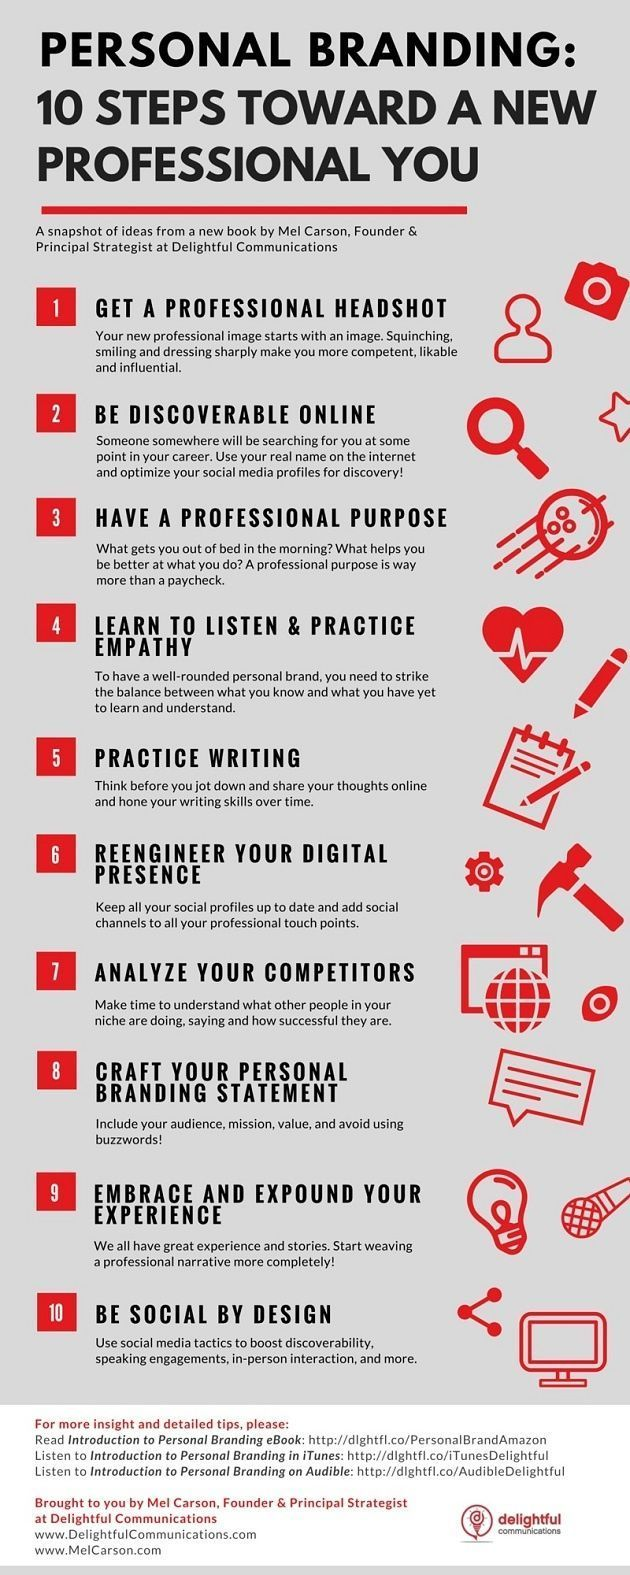 Personal Branding: 10 Steps Toward a New Professional You [Infographic] - /marketingprofs/